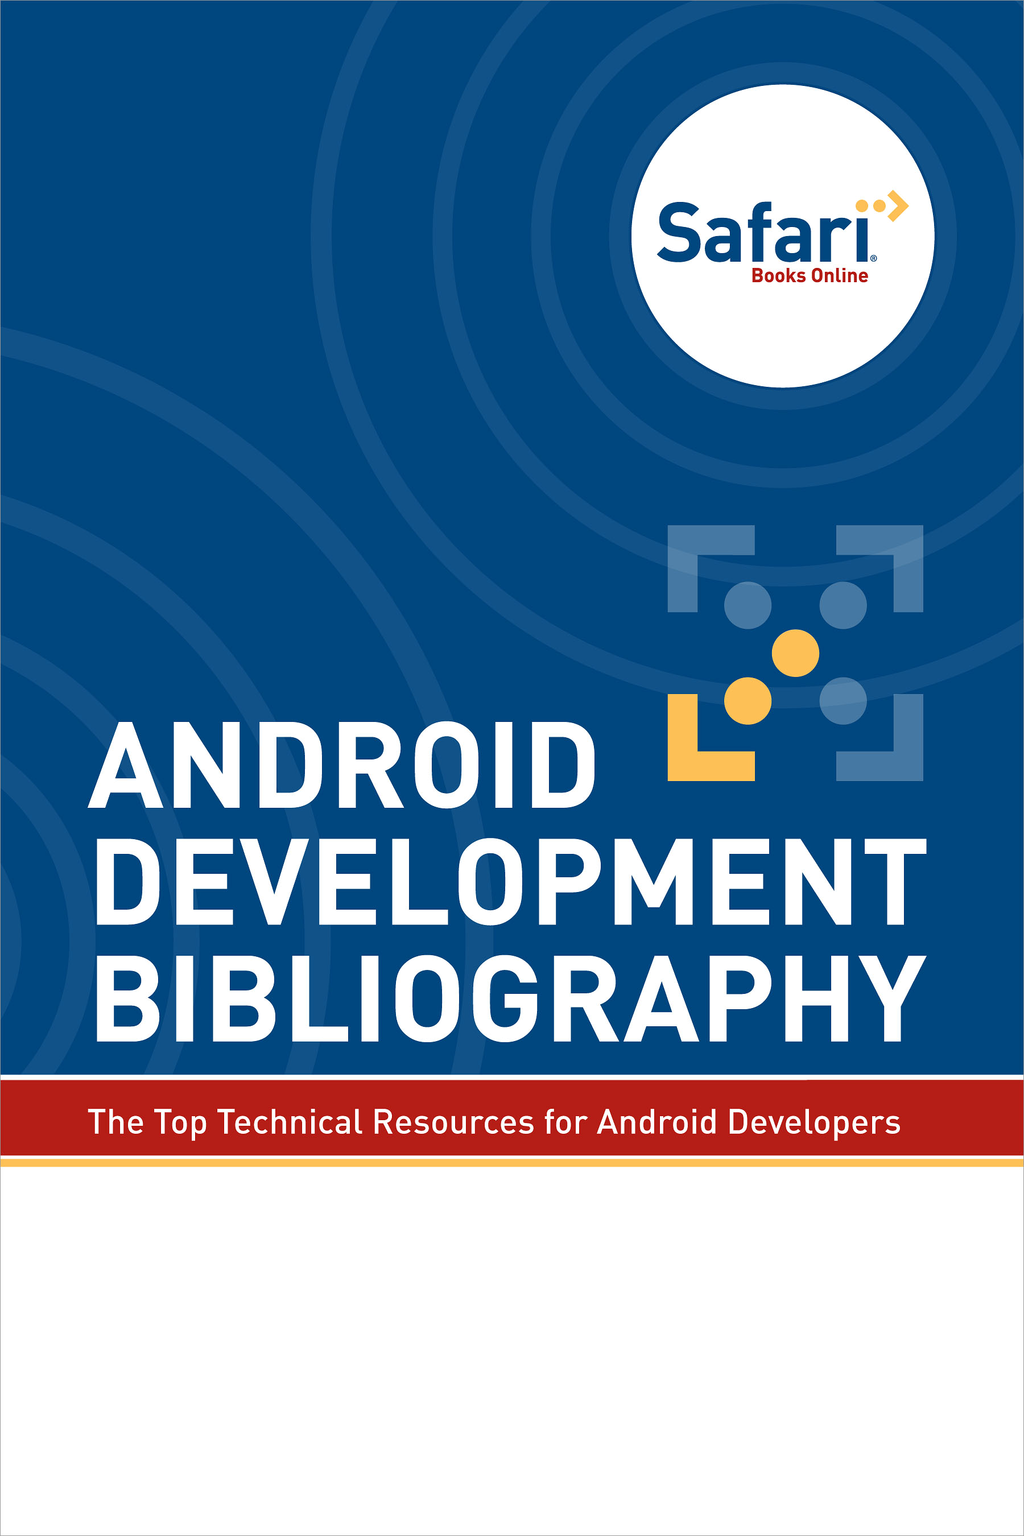 Android Development Bibliography